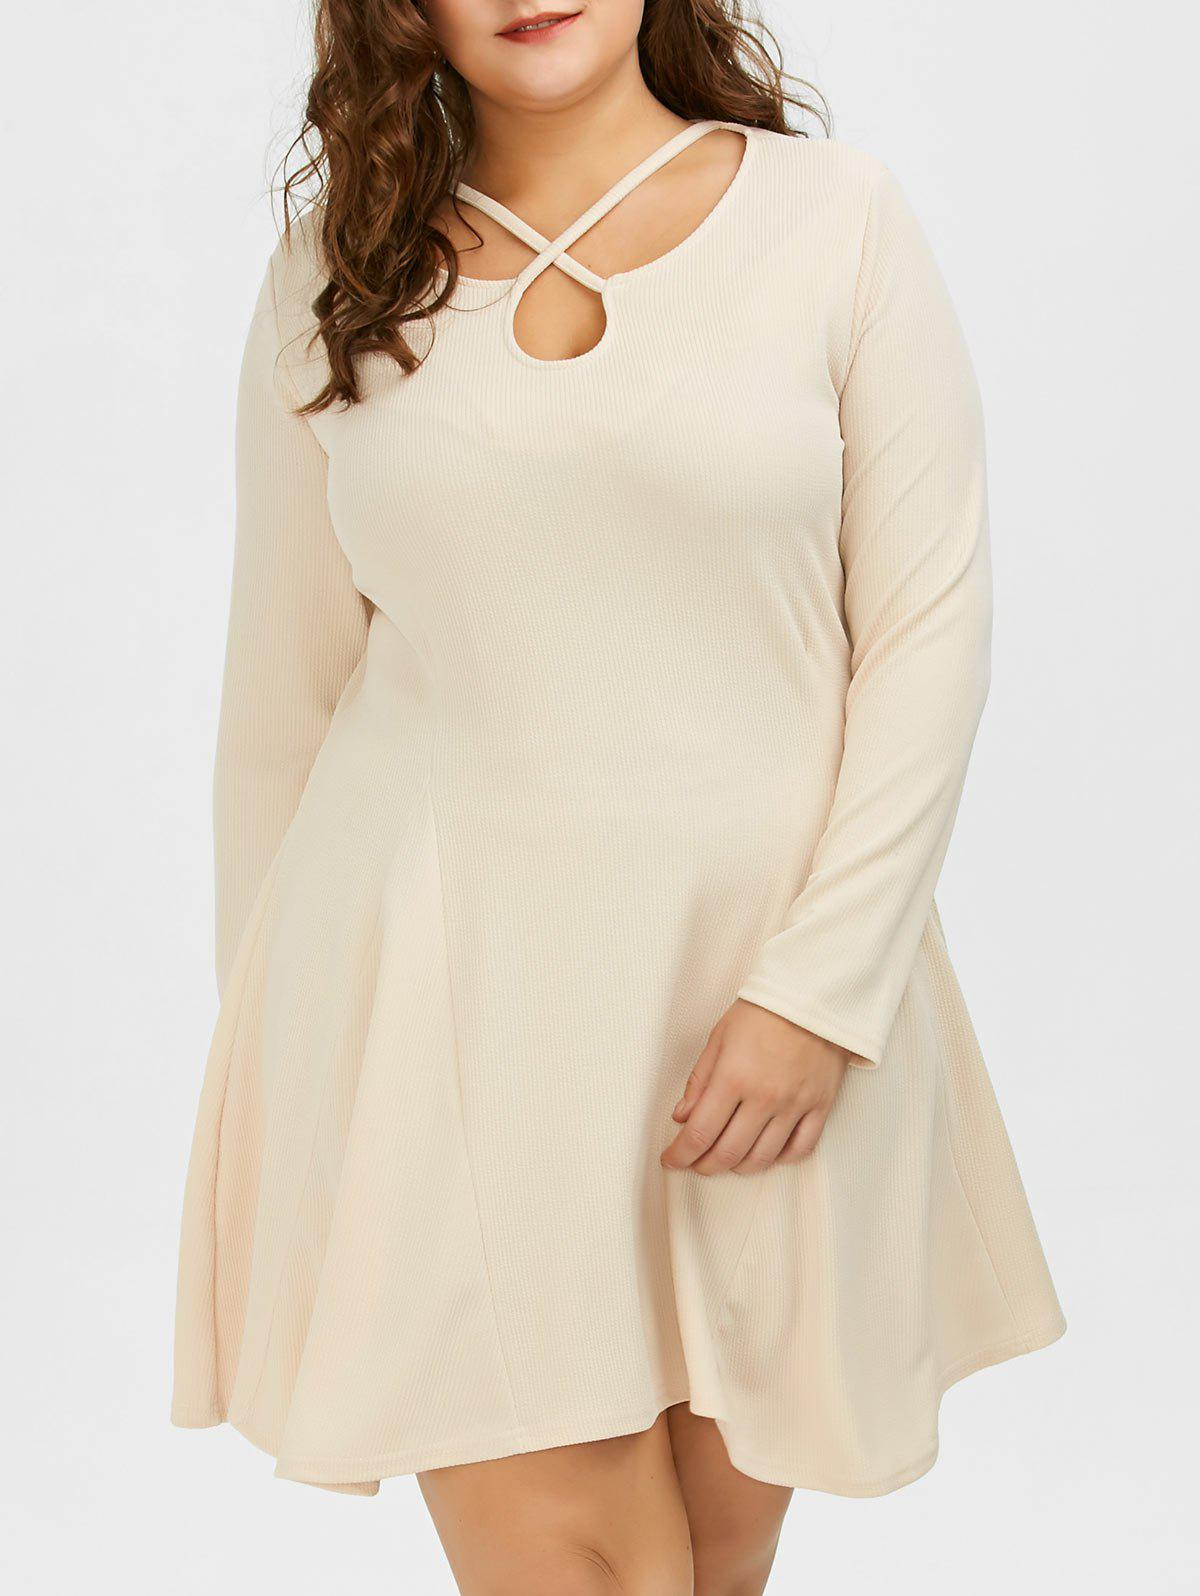 Cutout Plus Size Skater Dress with Long SleevesWOMEN<br><br>Size: 4XL; Color: LIGHT KHAKI; Style: Club; Material: Cotton,Cotton Blend,Polyester; Silhouette: A-Line; Dresses Length: Mini; Neckline: Sweetheart Neck; Sleeve Length: Long Sleeves; Waist: High Waisted; Embellishment: Criss-Cross,Hollow Out; Pattern Type: Solid Color; With Belt: No; Season: Fall,Spring; Weight: 0.3600kg; Package Contents: 1 x Dress;